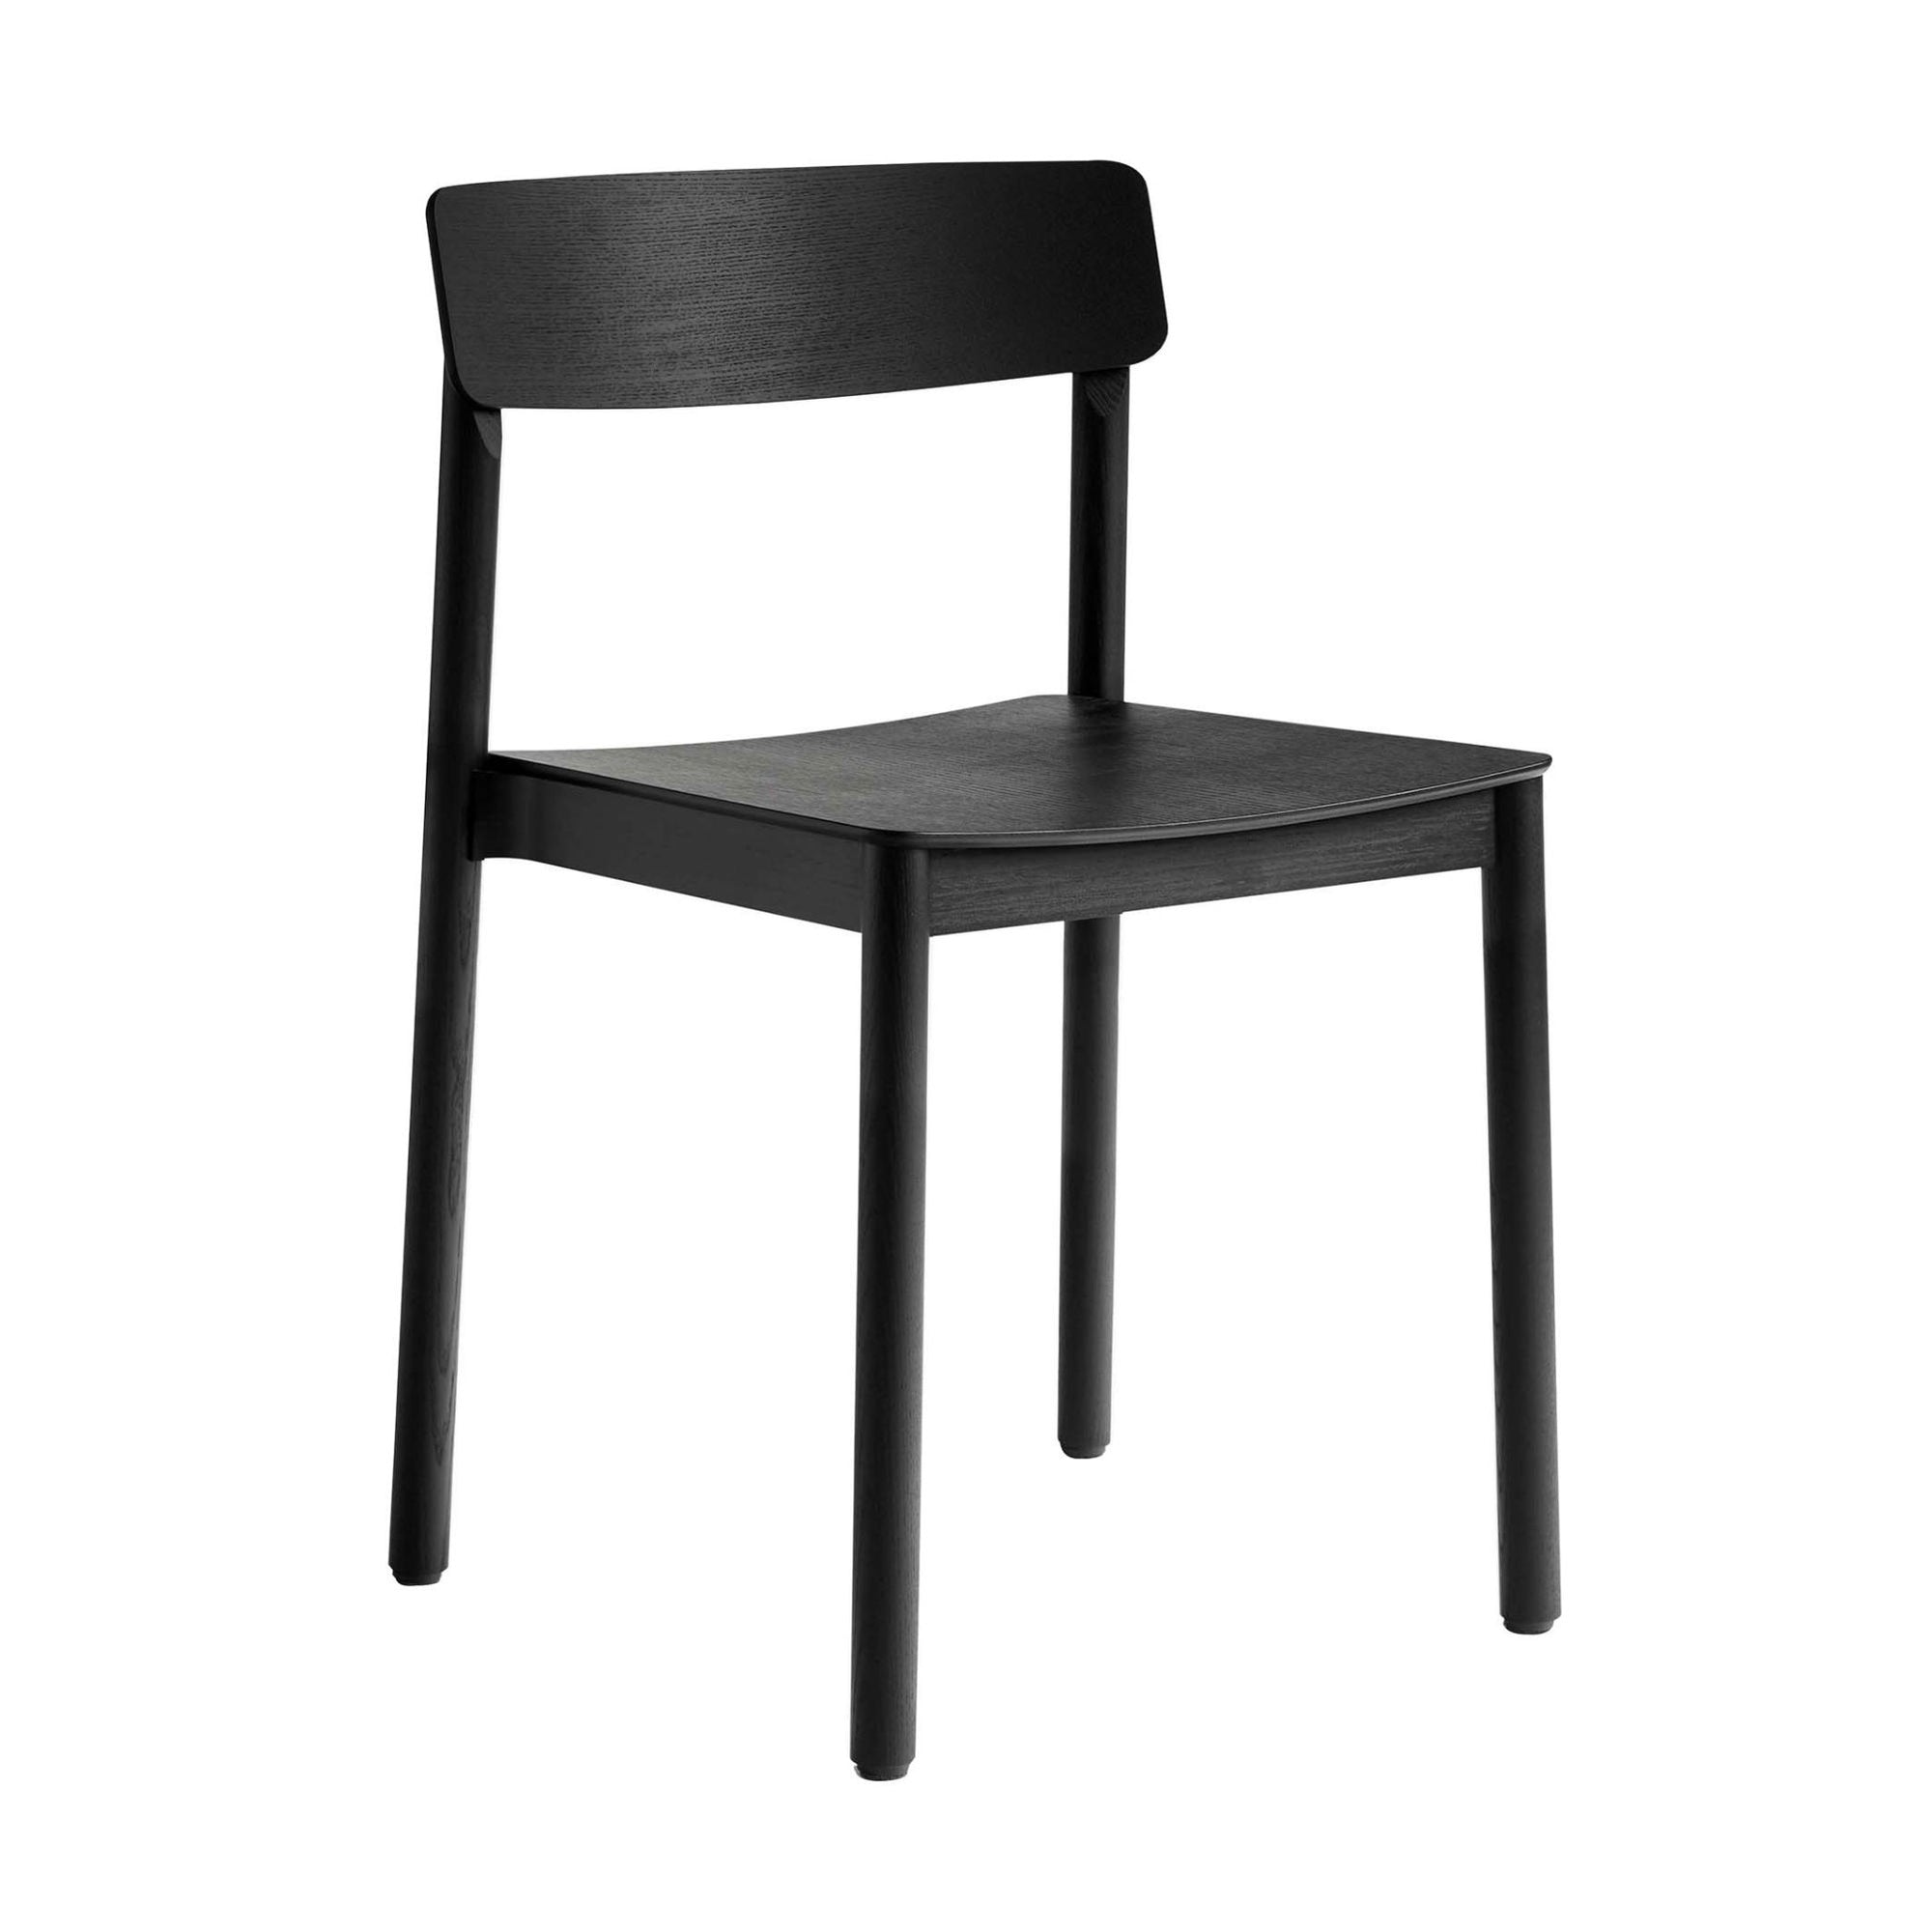 &Tradition Betty TK2 chair, black